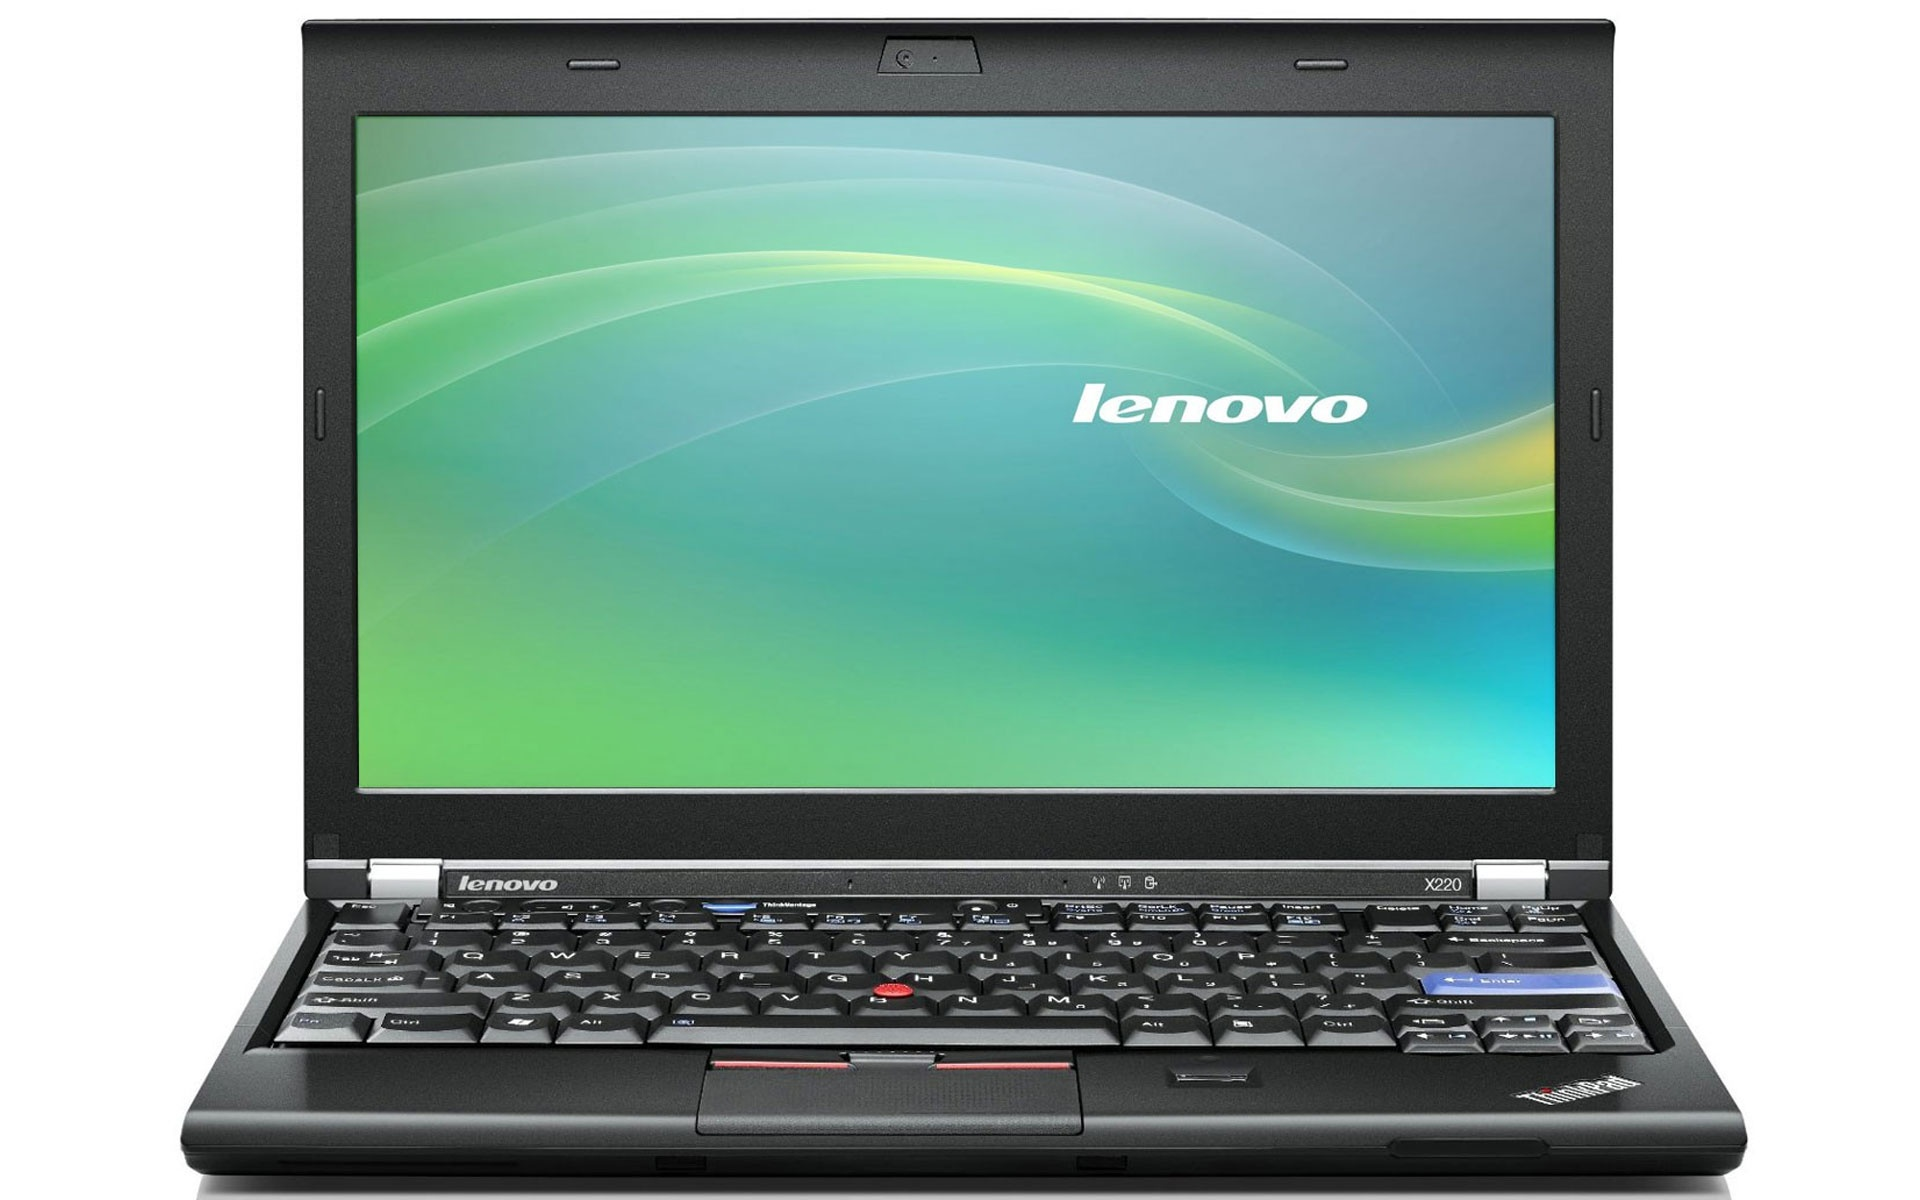 Lenovo Thinkpad X220  I7